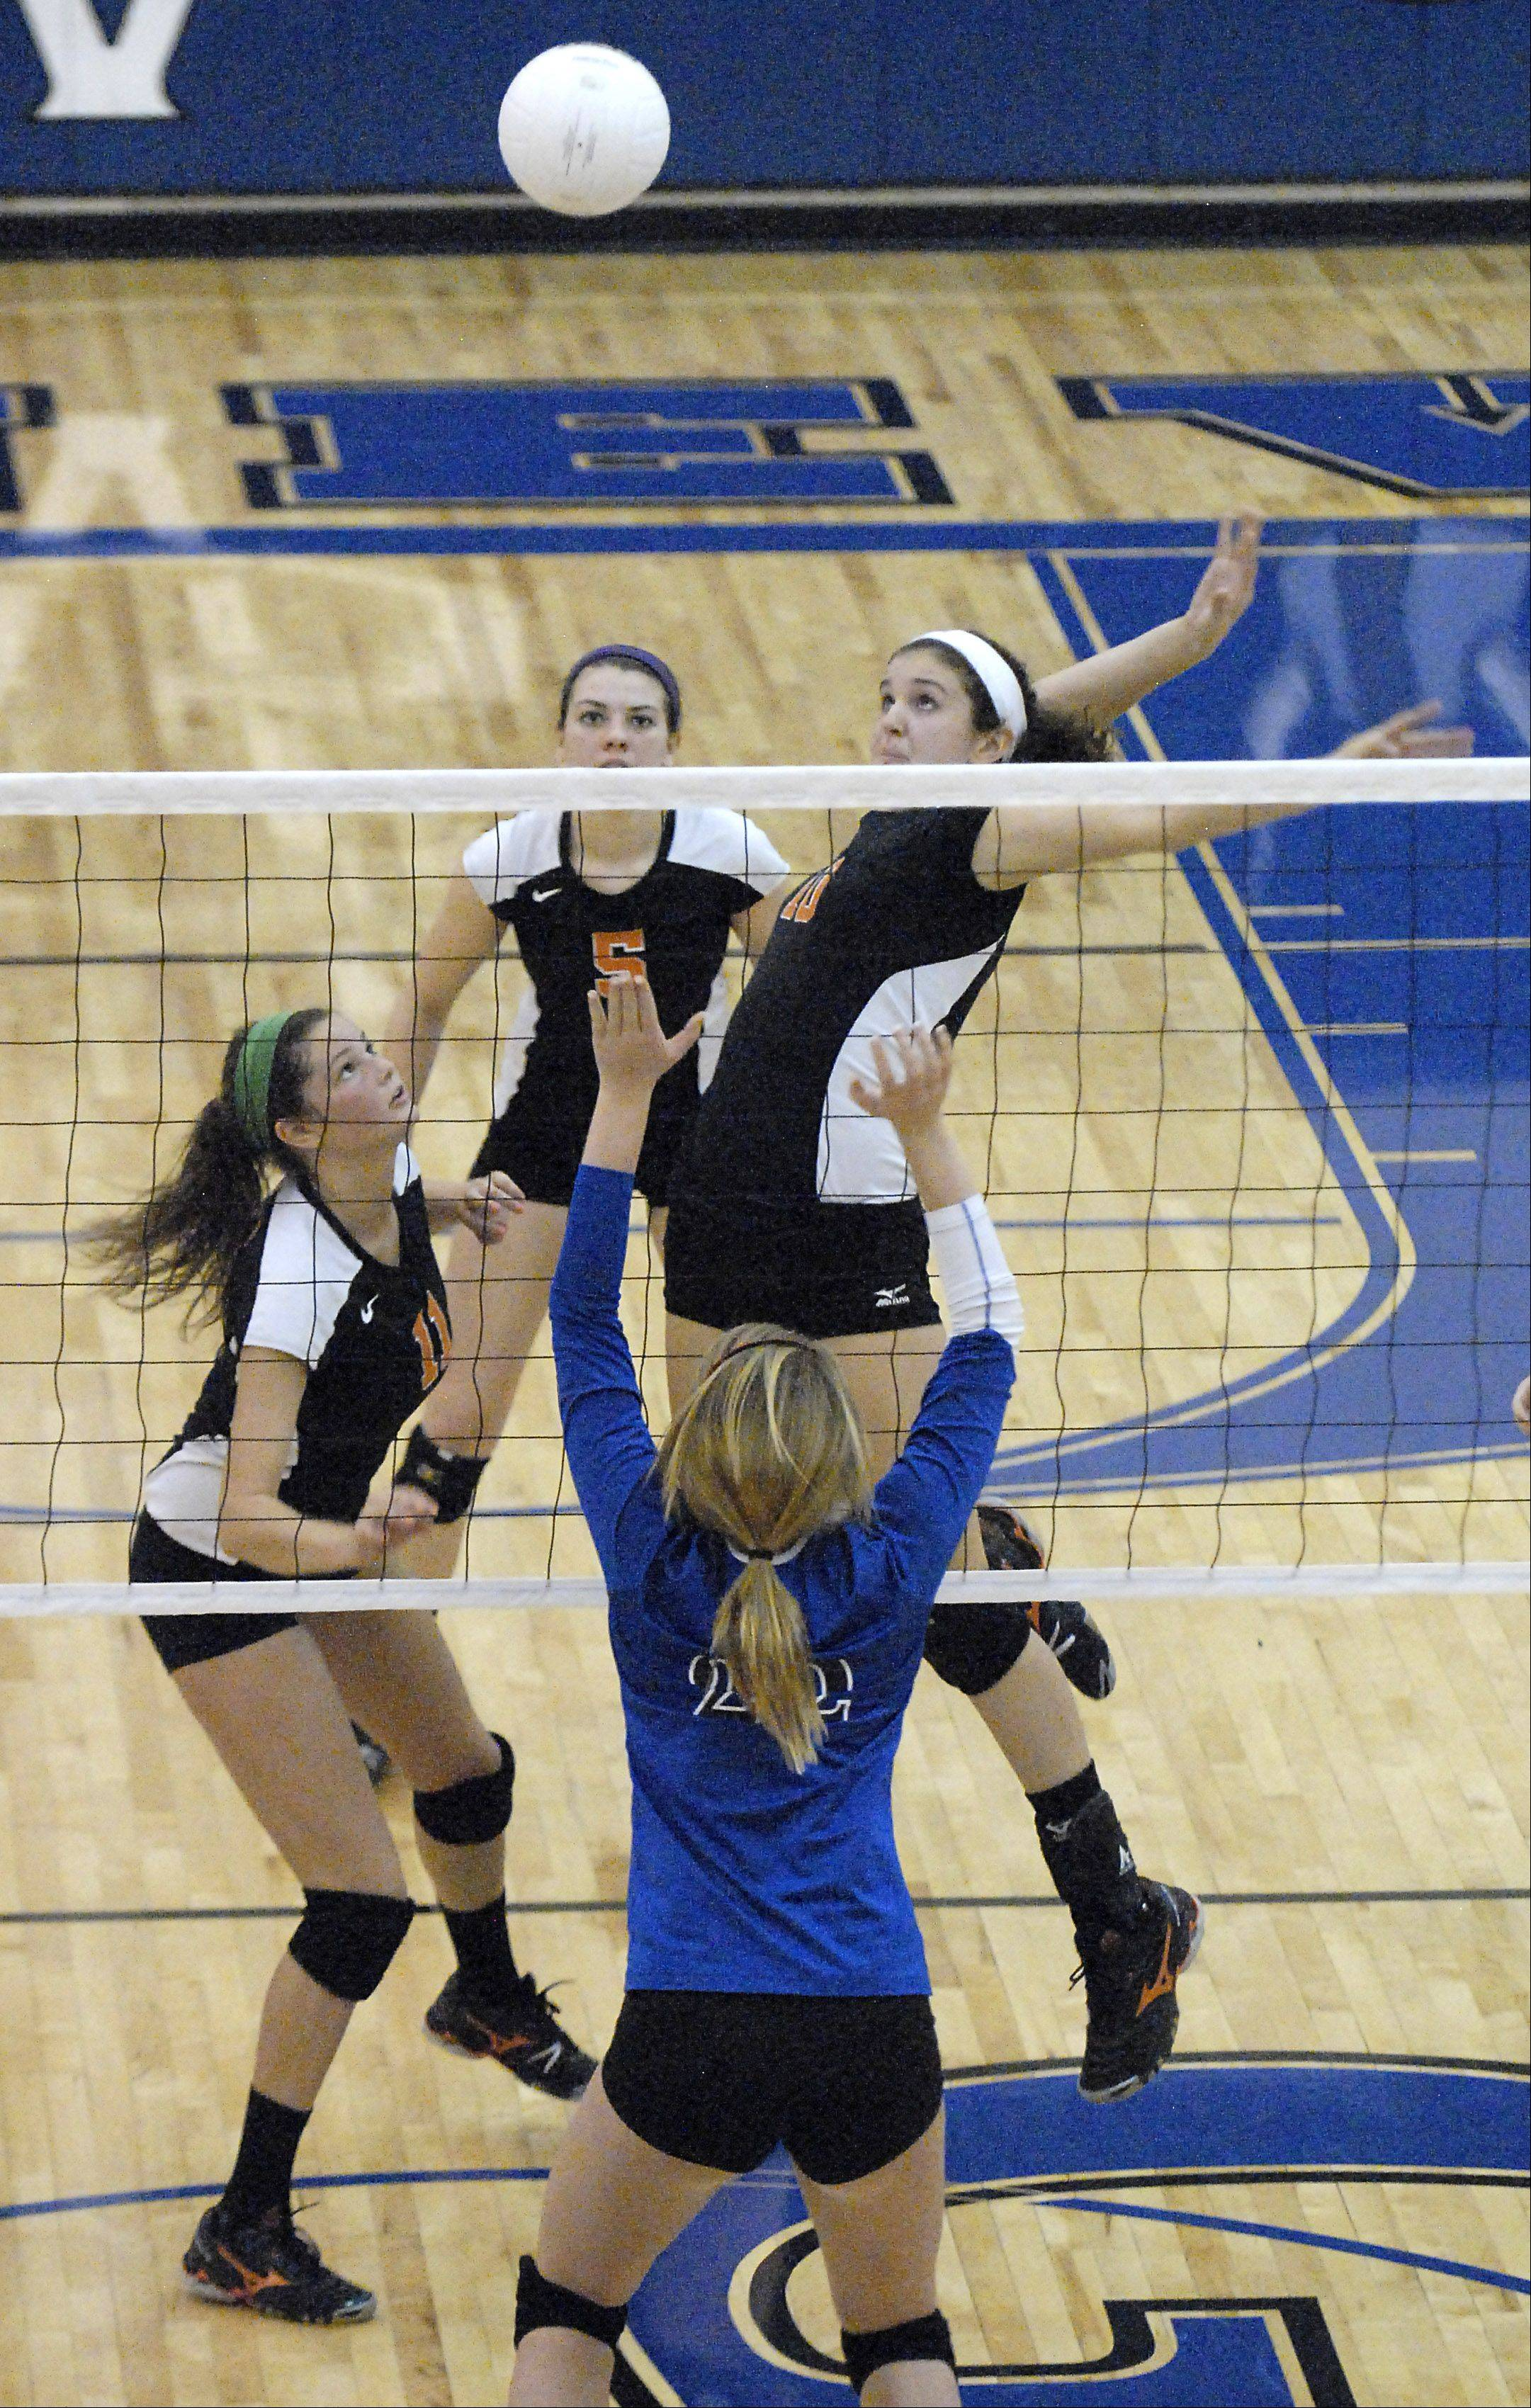 St. Charles East's Mikaela Mosquera winds up for a spike in game two on Tuesday, October 16.